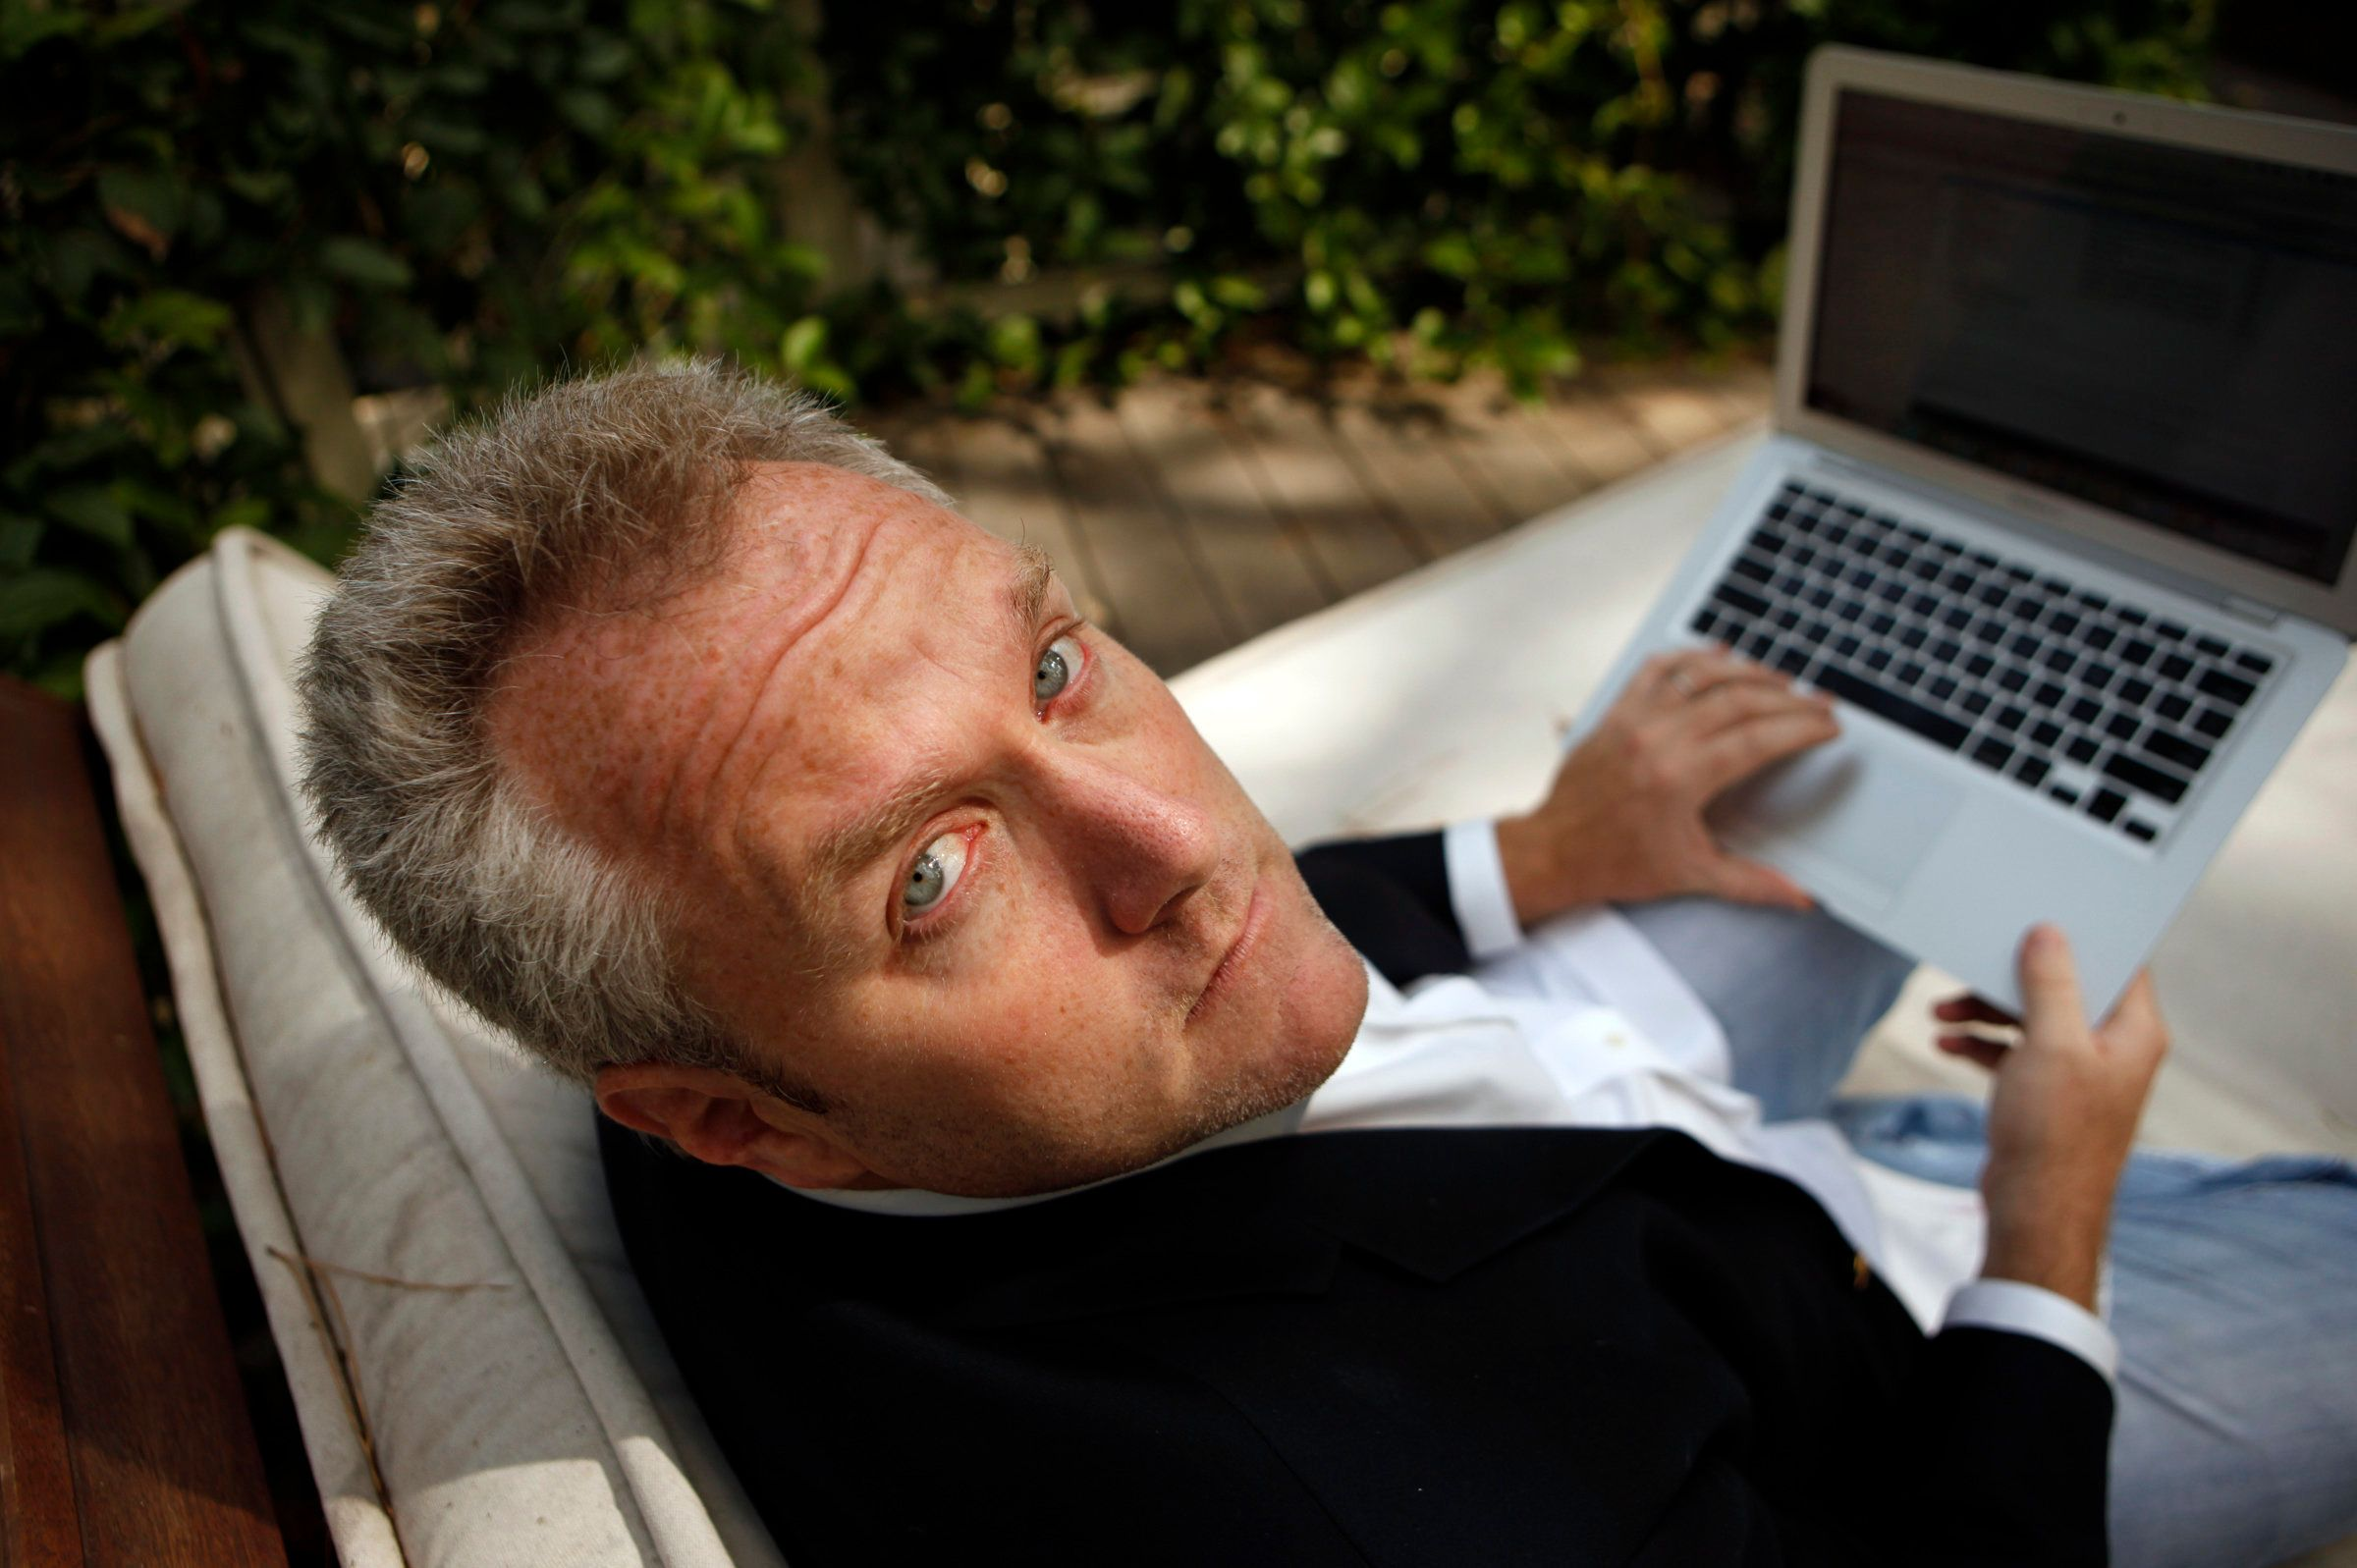 Andrew Breitbart, the Los Angeles new media entrepreneur photographed at his Los Angeles home August 5, 2010. Breitbart unleashed a national furor when he posted videos of USDA official Shirley Sherrod telling a meeting of the NAACP that she had once discriminated against a white farmer.  (Photo by Al Seib/Los Angeles Times via Getty Images)